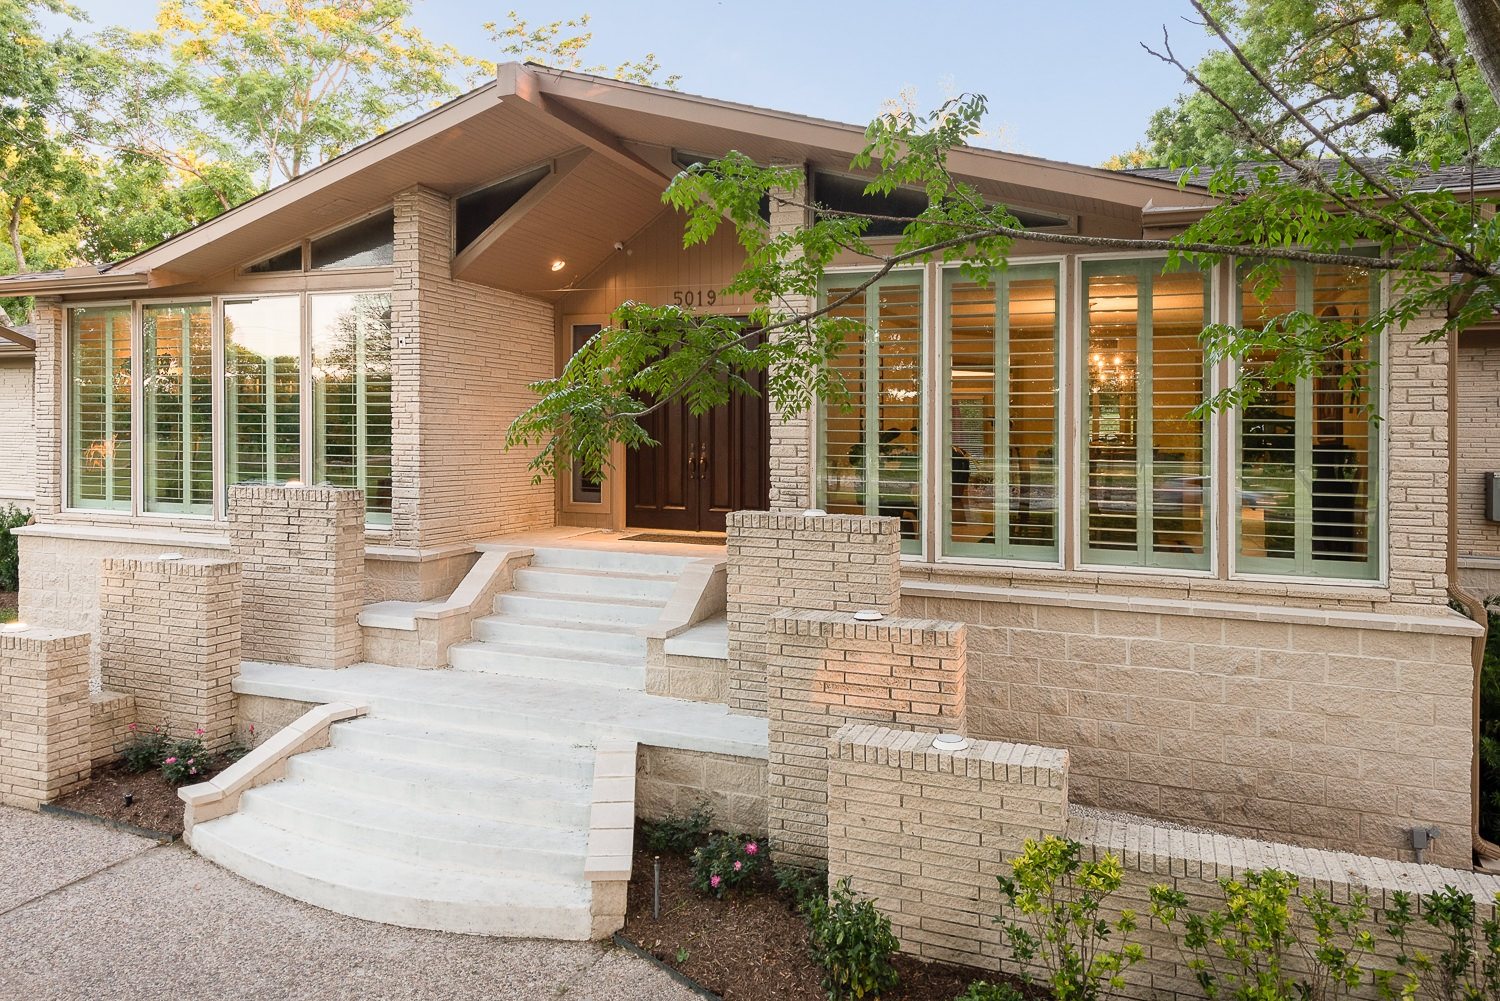 5019 South Braeswood, P3 Elevation, Low Lift, Front Stairs